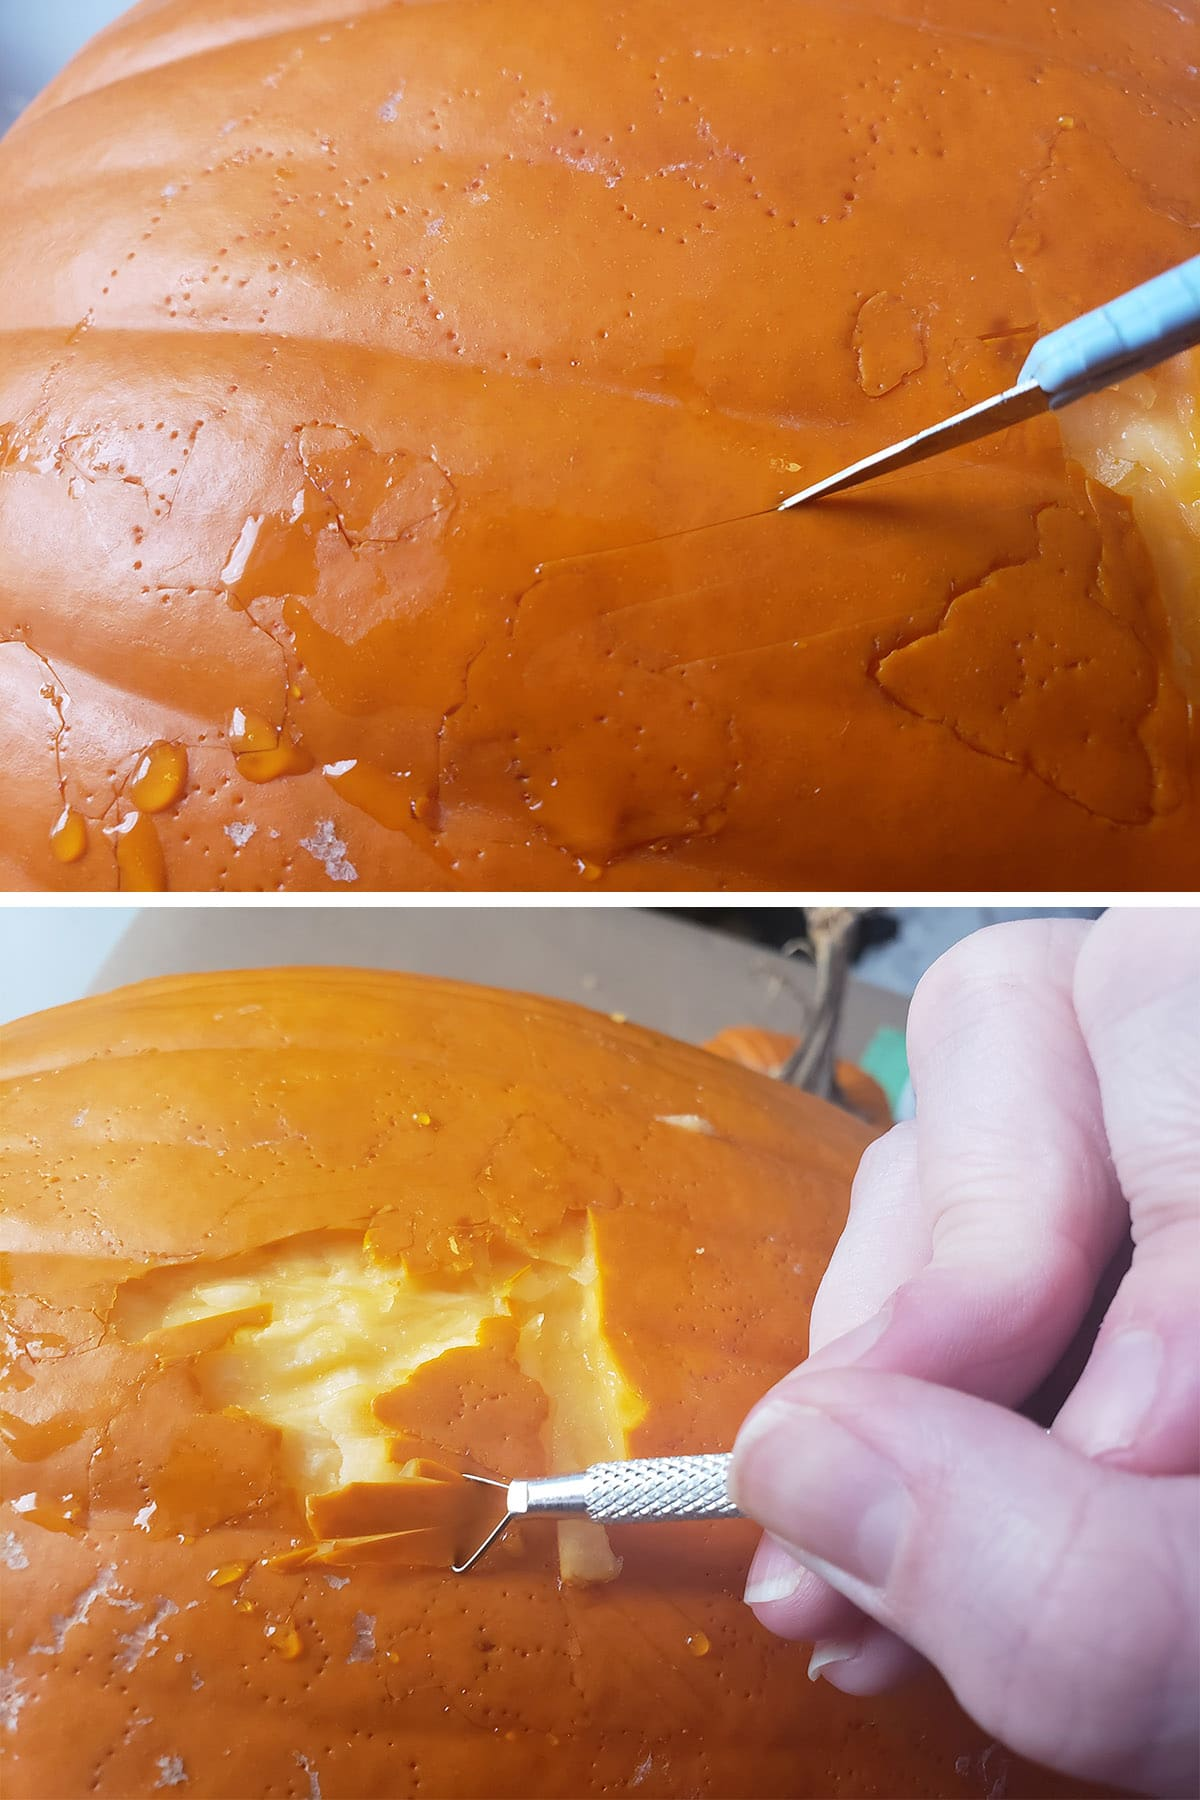 Using an X-Acto knife to trim sections of the pumpkin design.